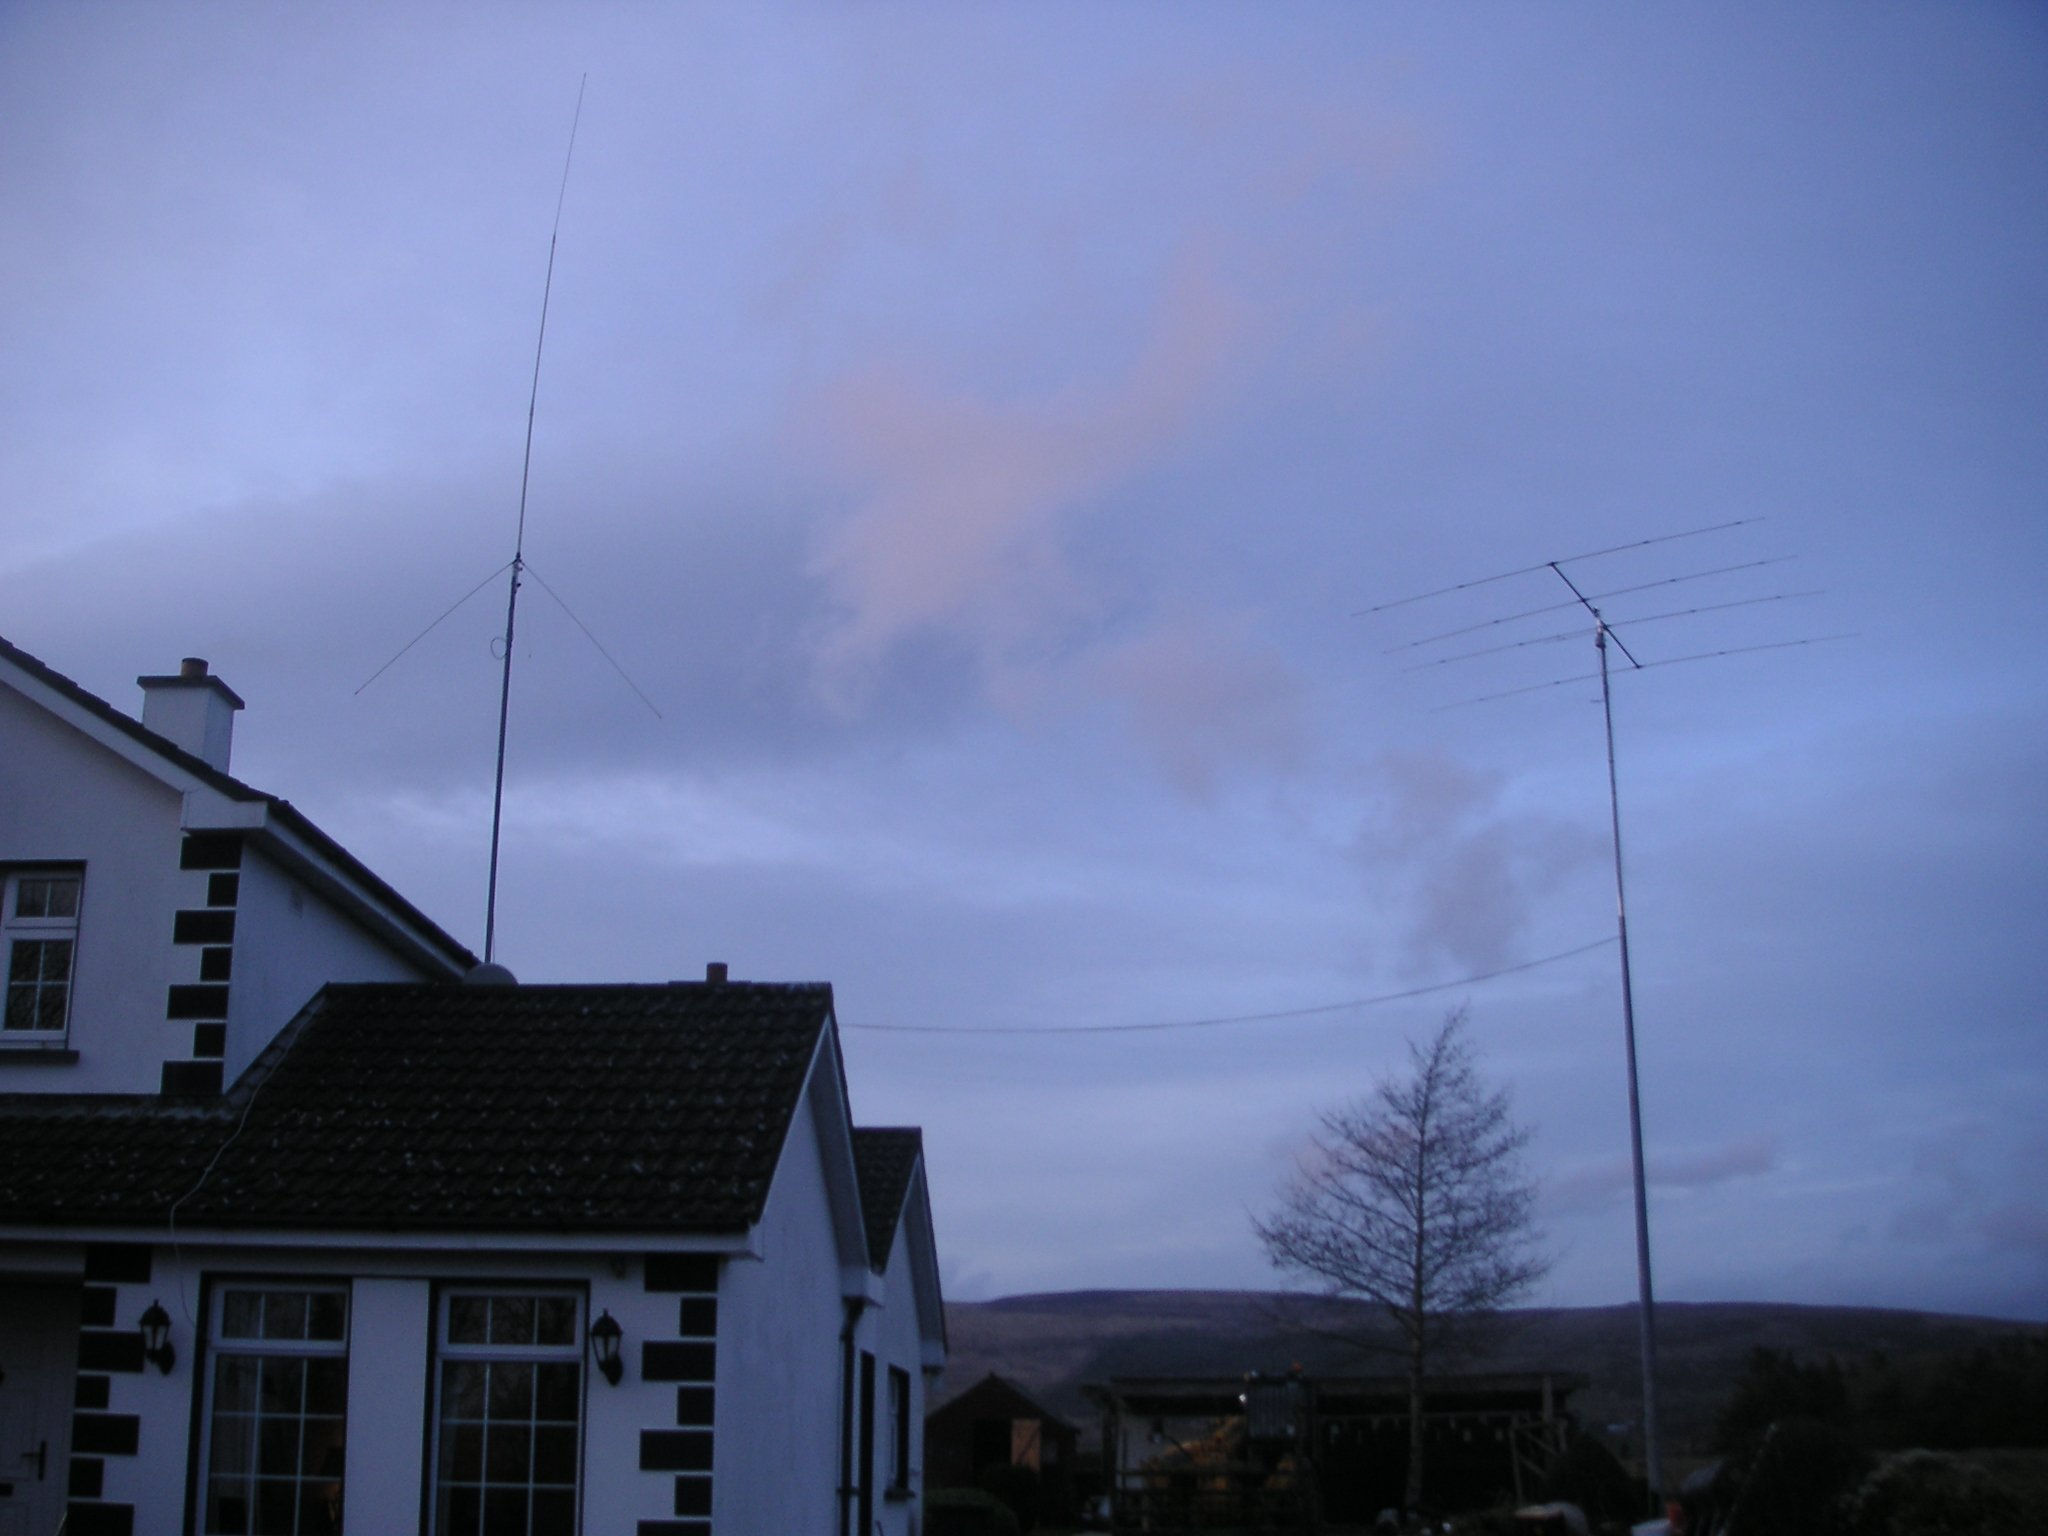 Sirio Sy27-4 4 Elements Tunable 26.5-30mhz Yagi Antenna by Sirio Antenna (Image #1)